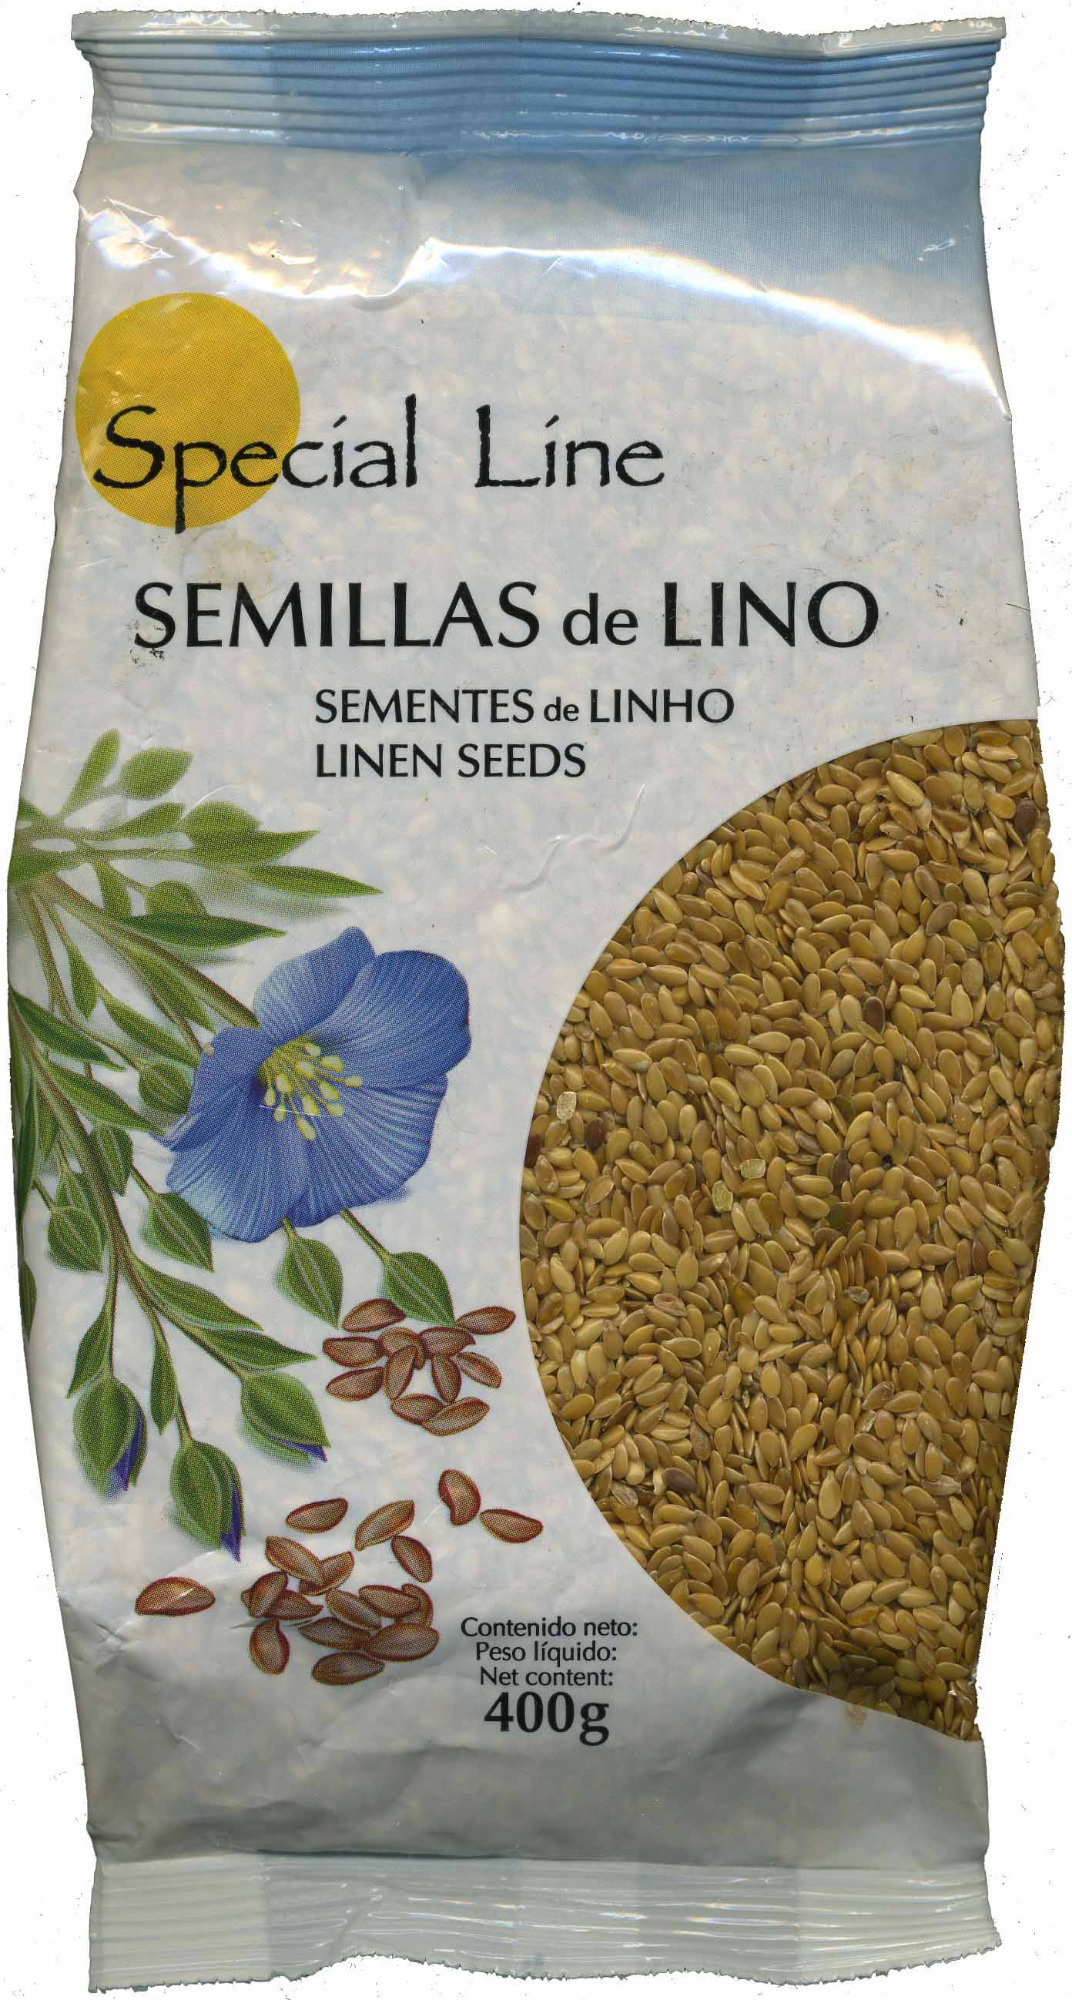 Semillas de lino - Product